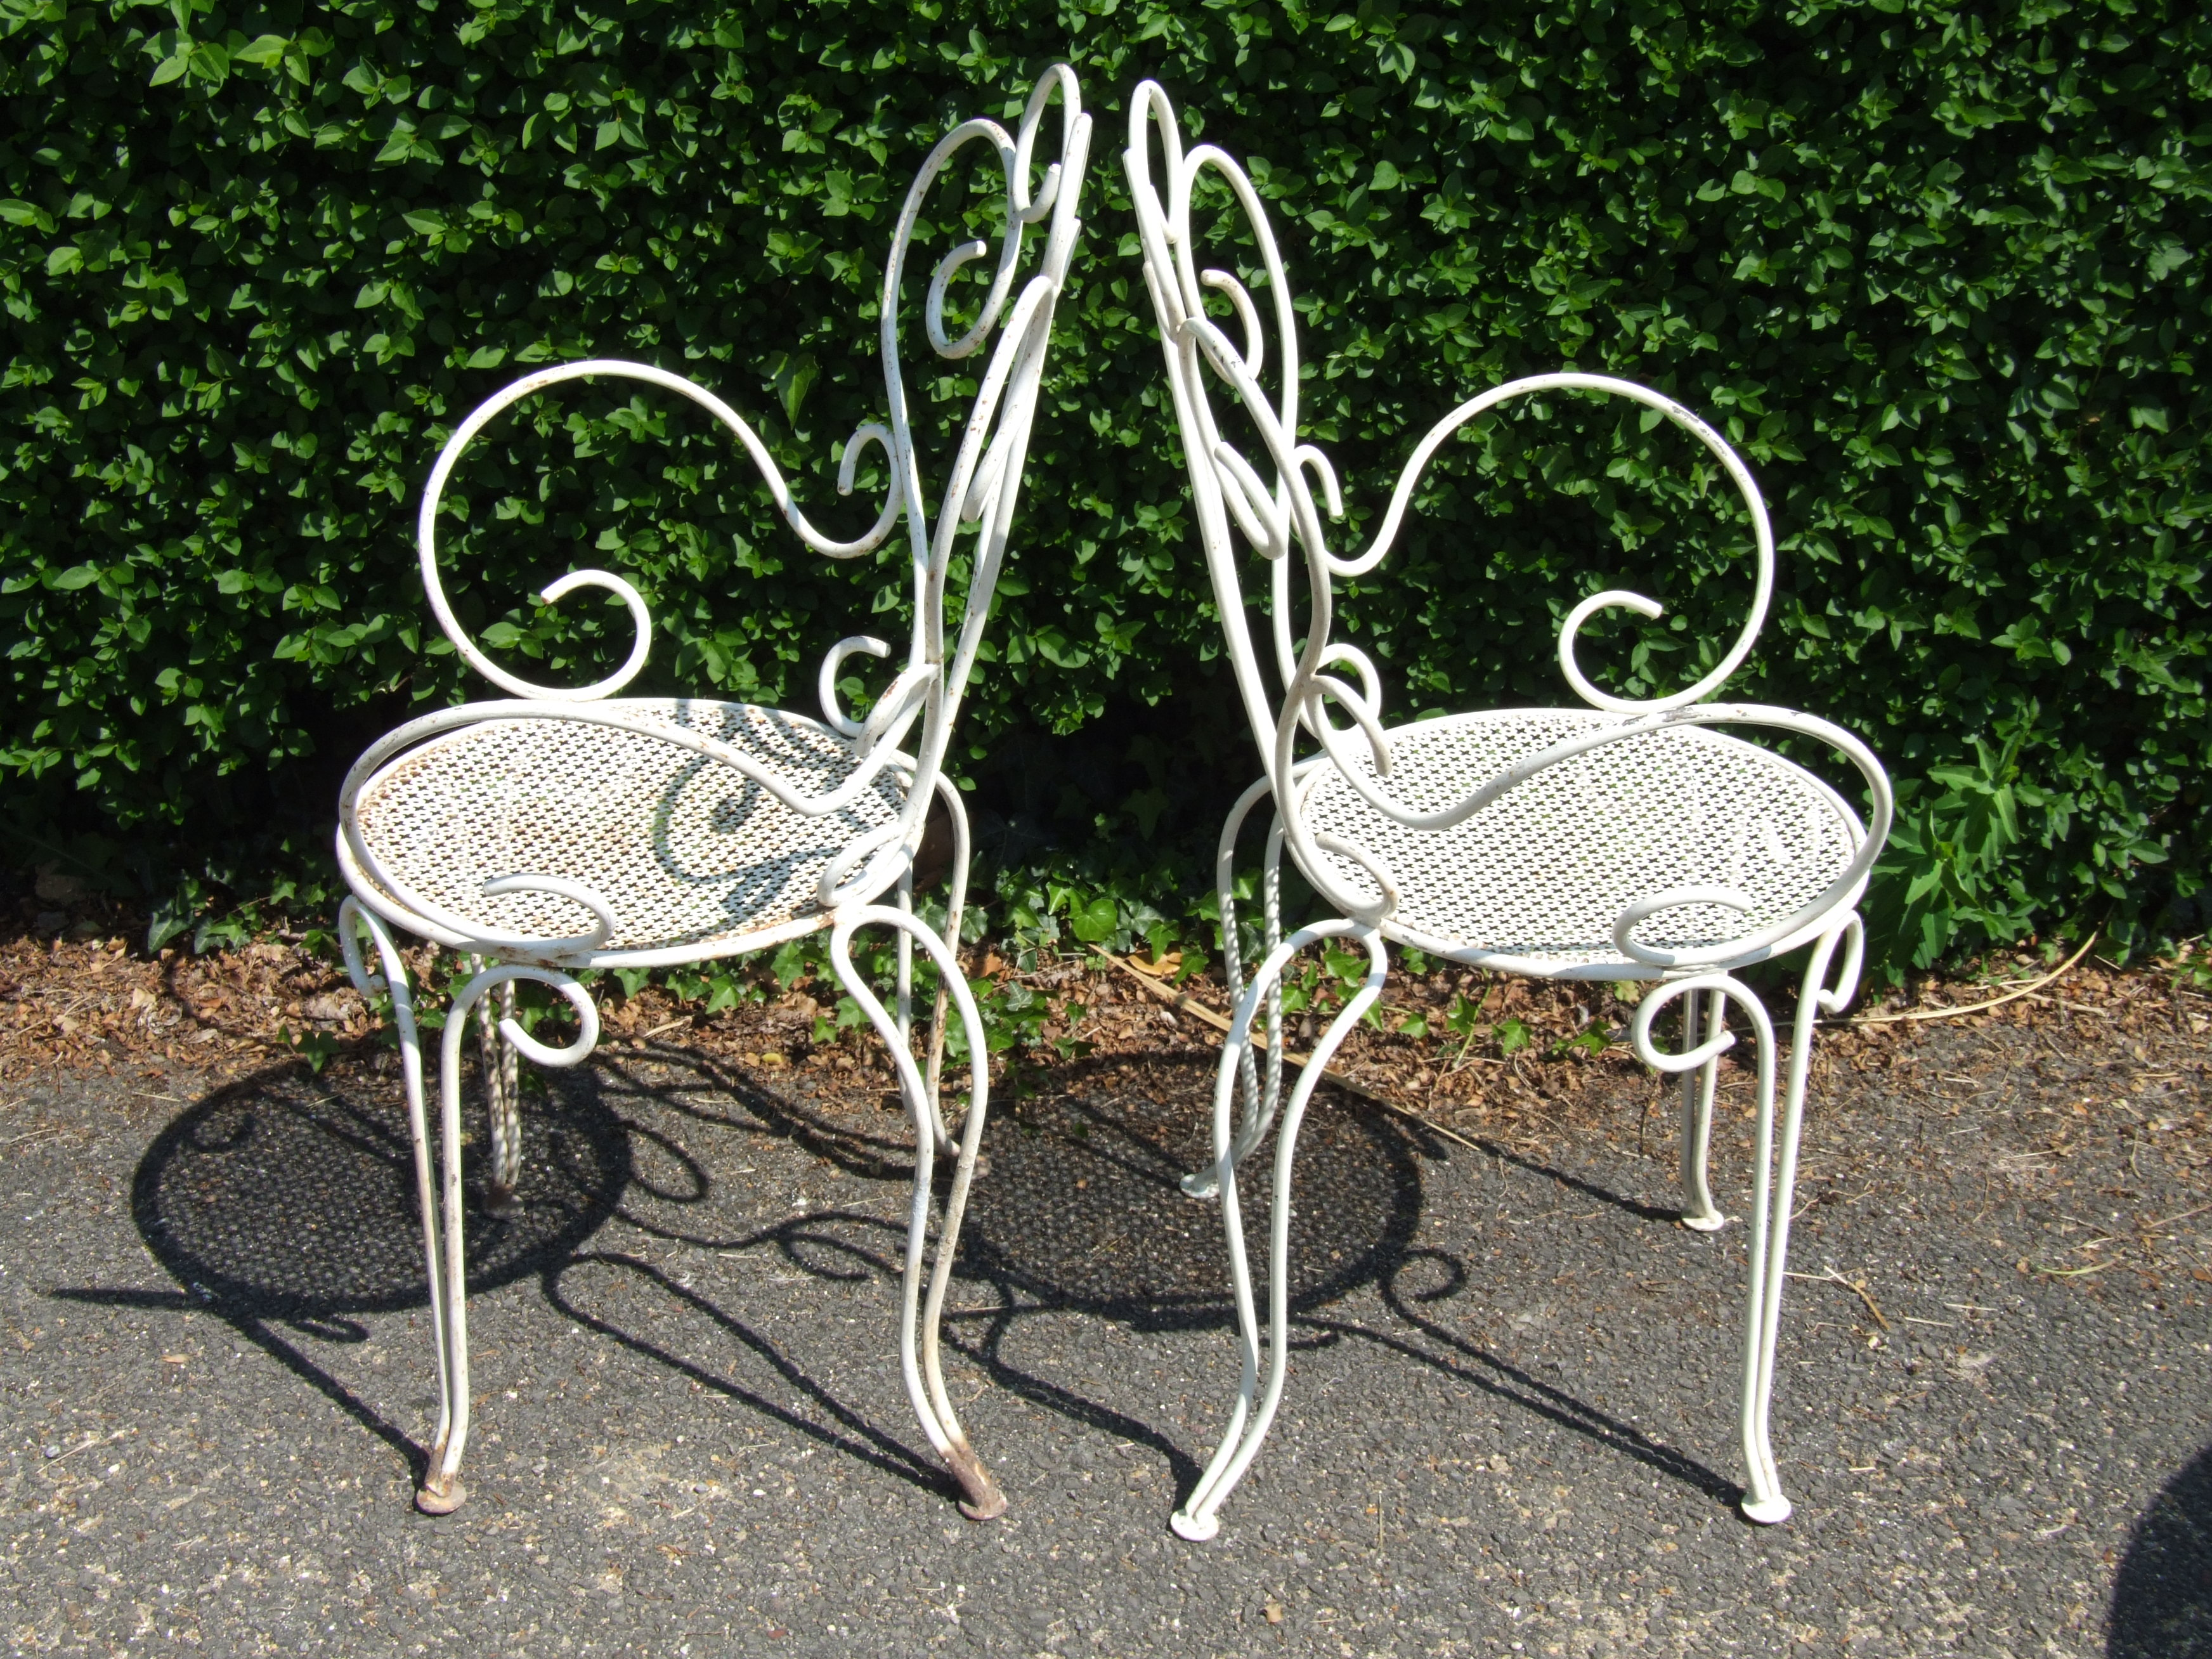 G099 s pair vintage french wrought iron garden patio chairs la belle toffe Vintage metal garden furniture